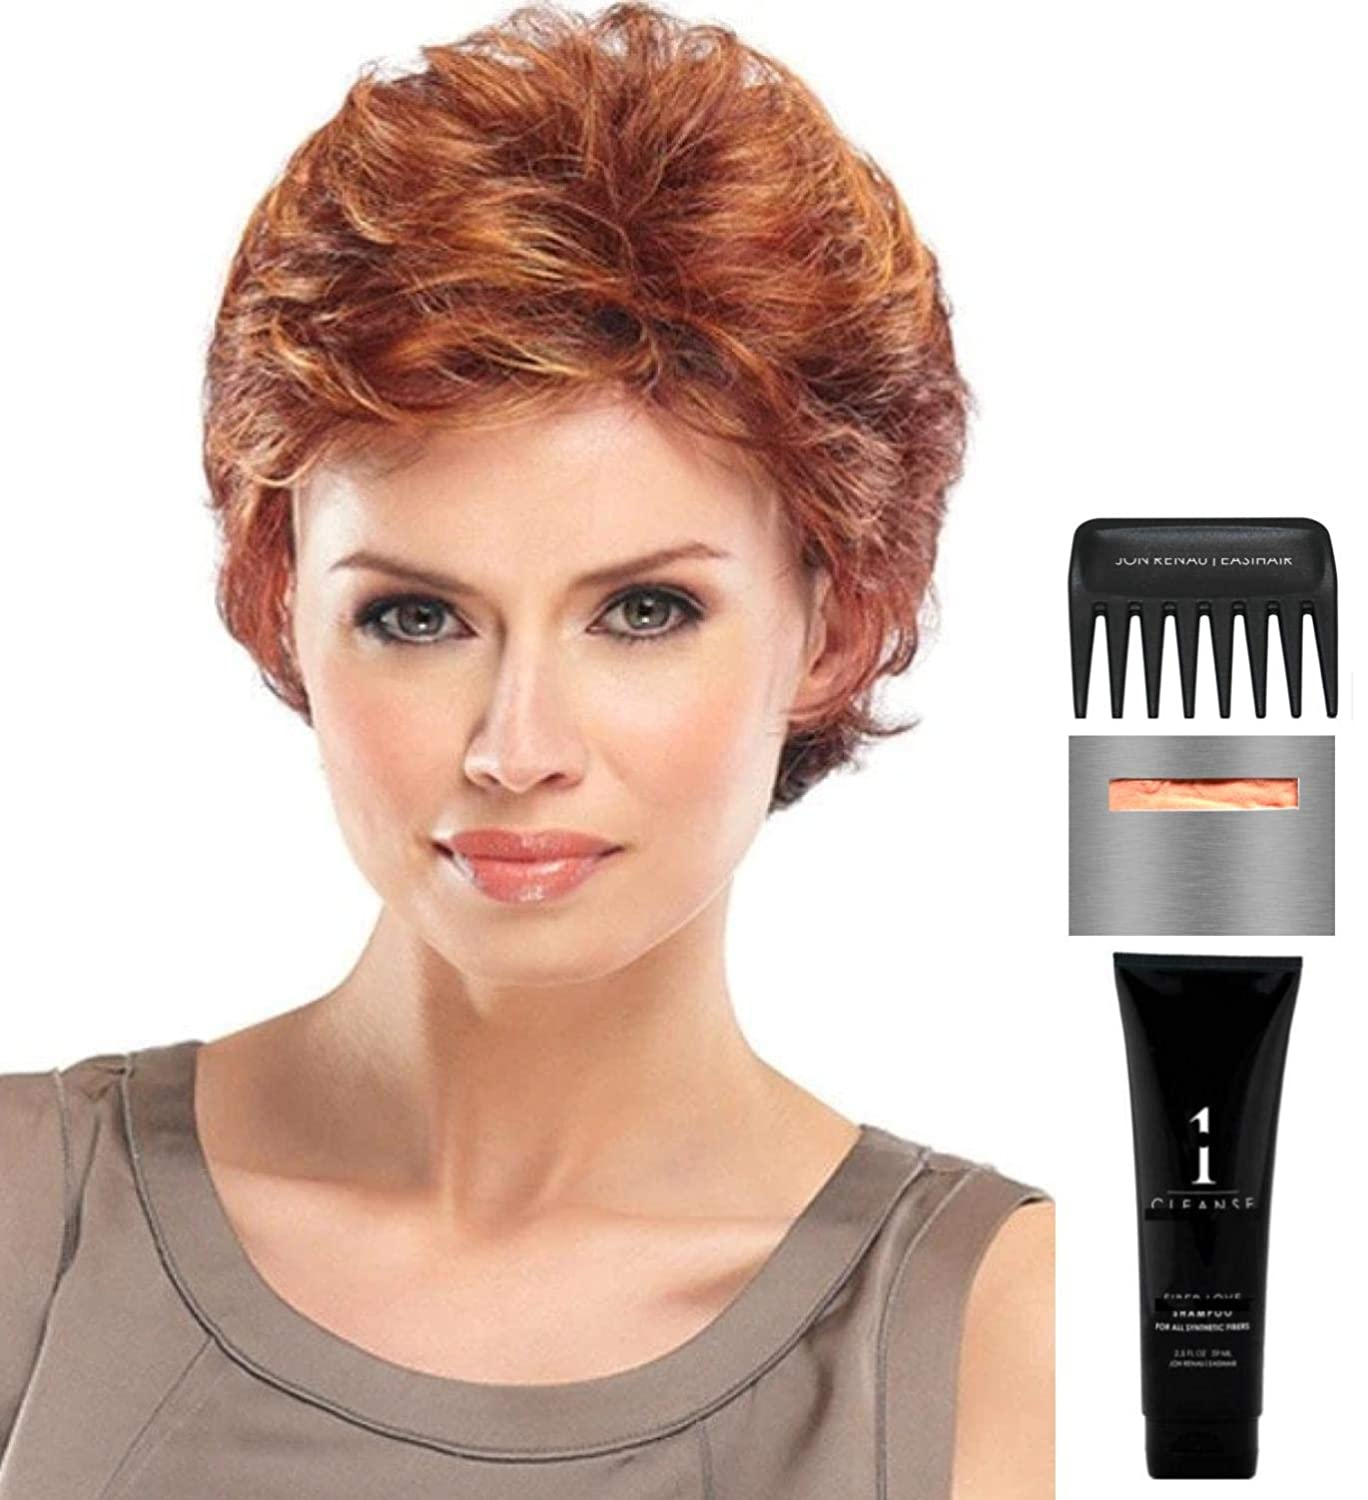 Max 78% OFF Bundle - 5 items: Gaby Wig by A Jon In a popularity Wigs Bo Christy's Renau Q